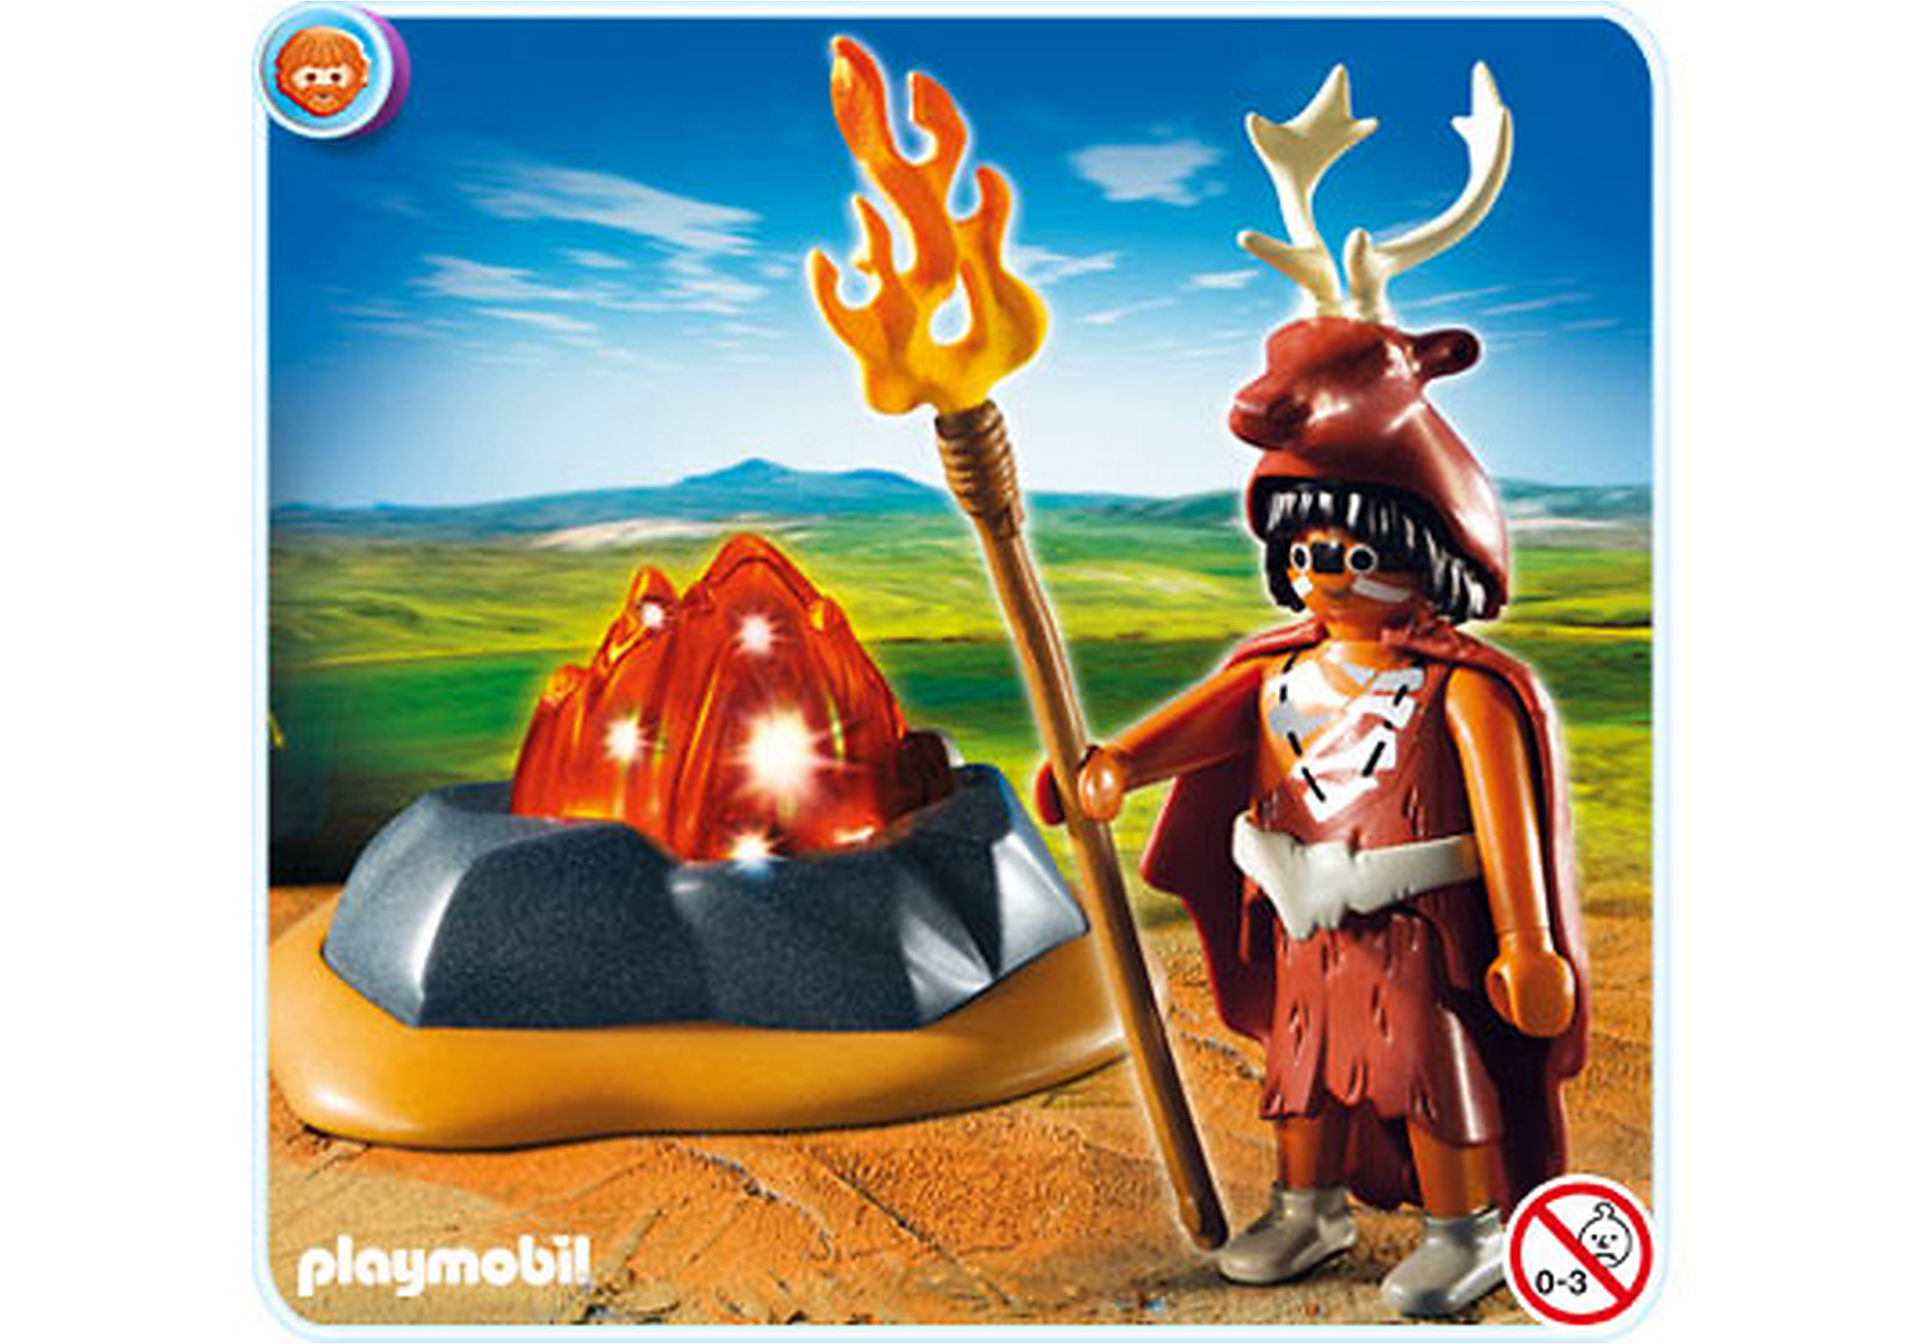 http://media.playmobil.com/i/playmobil/5104-A_product_detail/Feuerhüter mit LED-Feuerfels